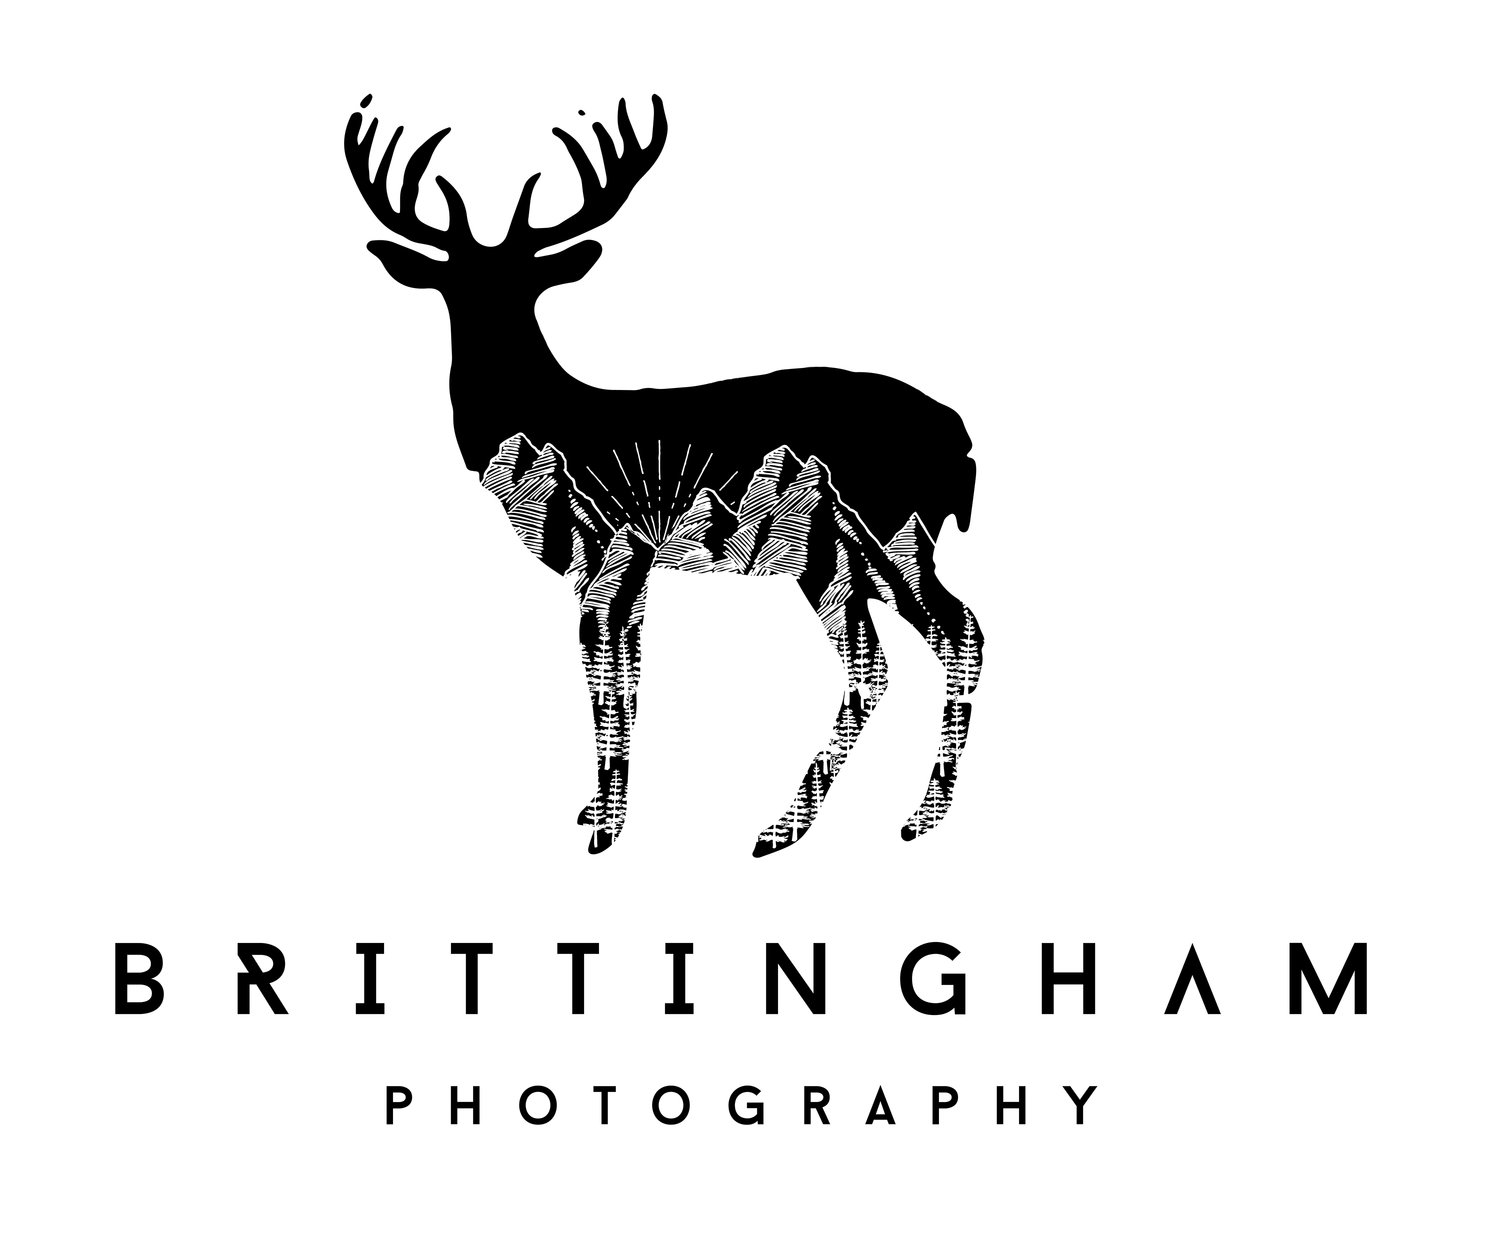 Brittingham Photography